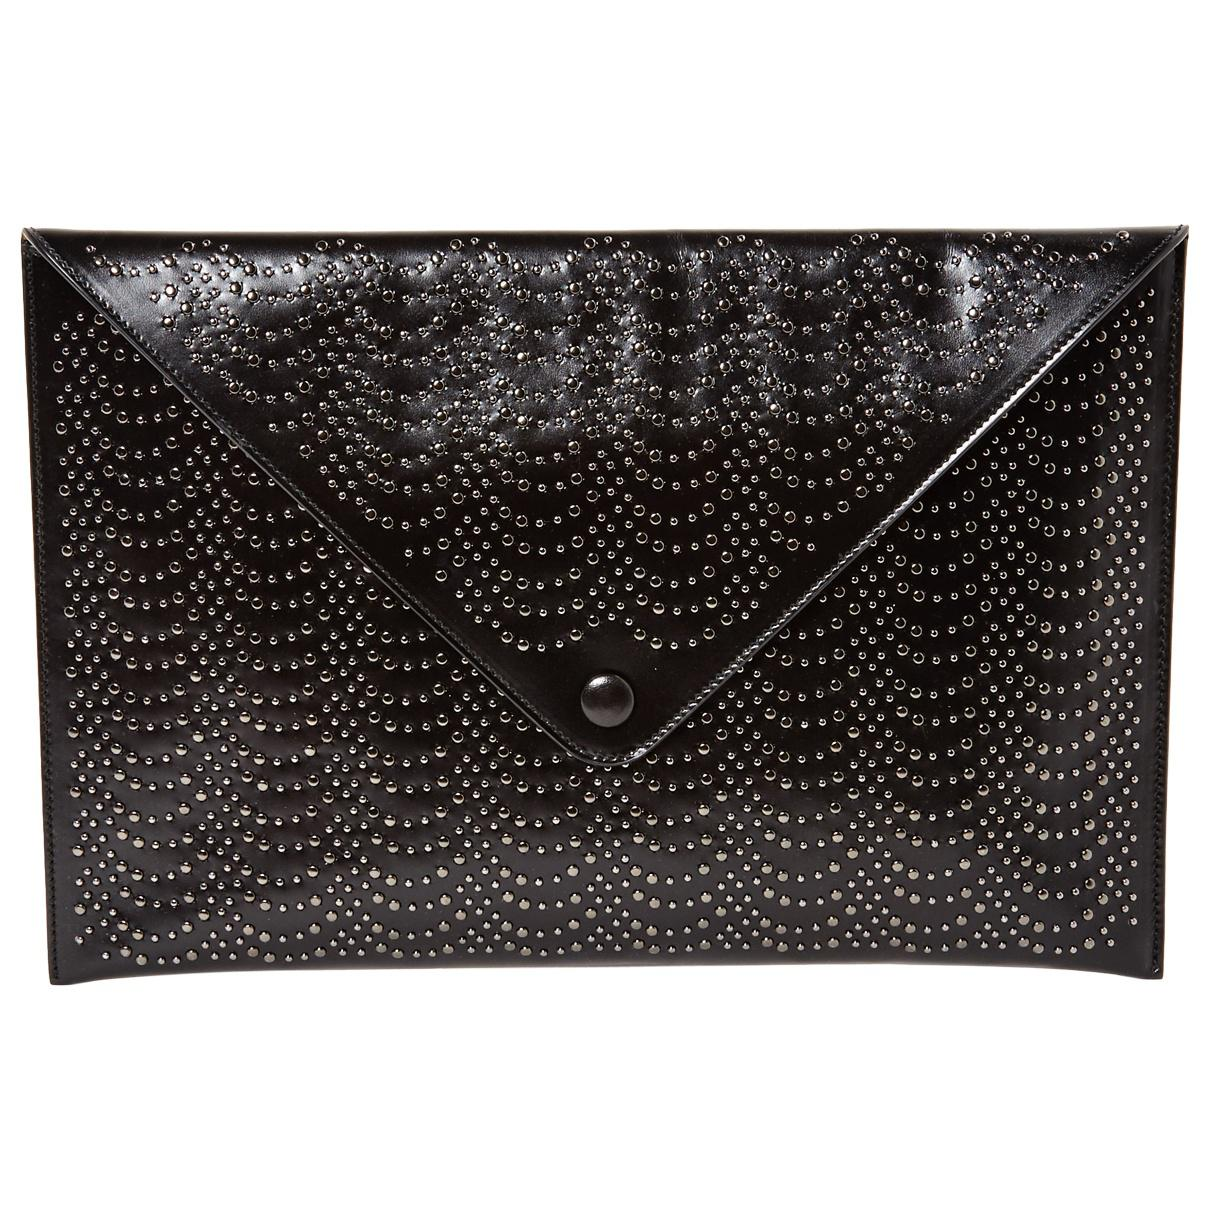 Alaia Pre-owned - Leather clutch bag cT2WK